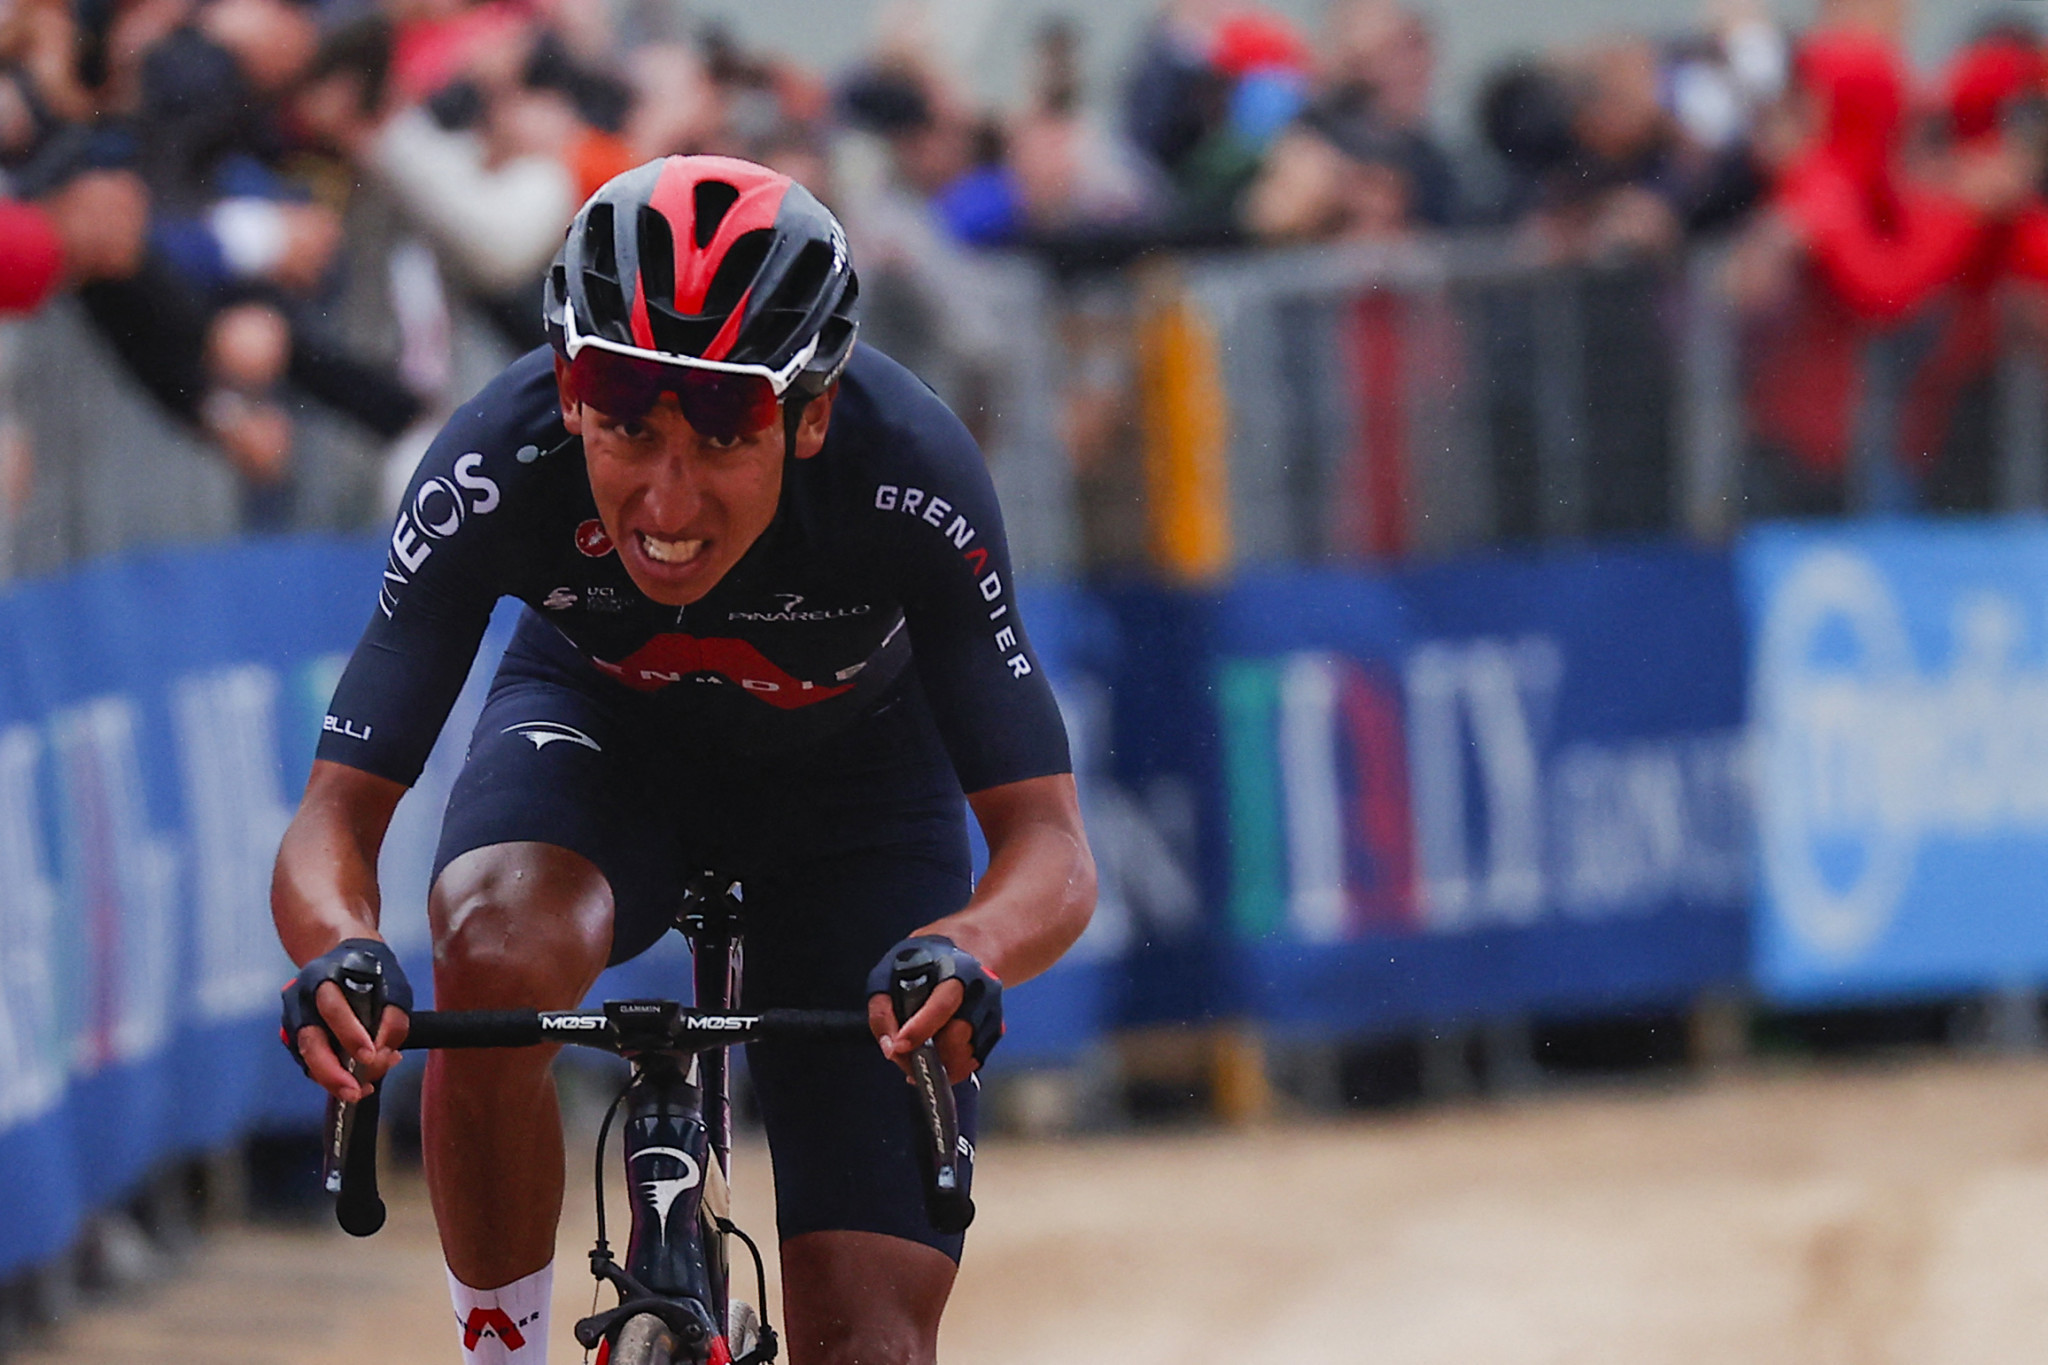 Colombia's Egan Bernal now leads the Giro d'Italia by one minute and 33 seconds after finishing on today's stage at the summit of Monte Zoncalon ©Getty Images